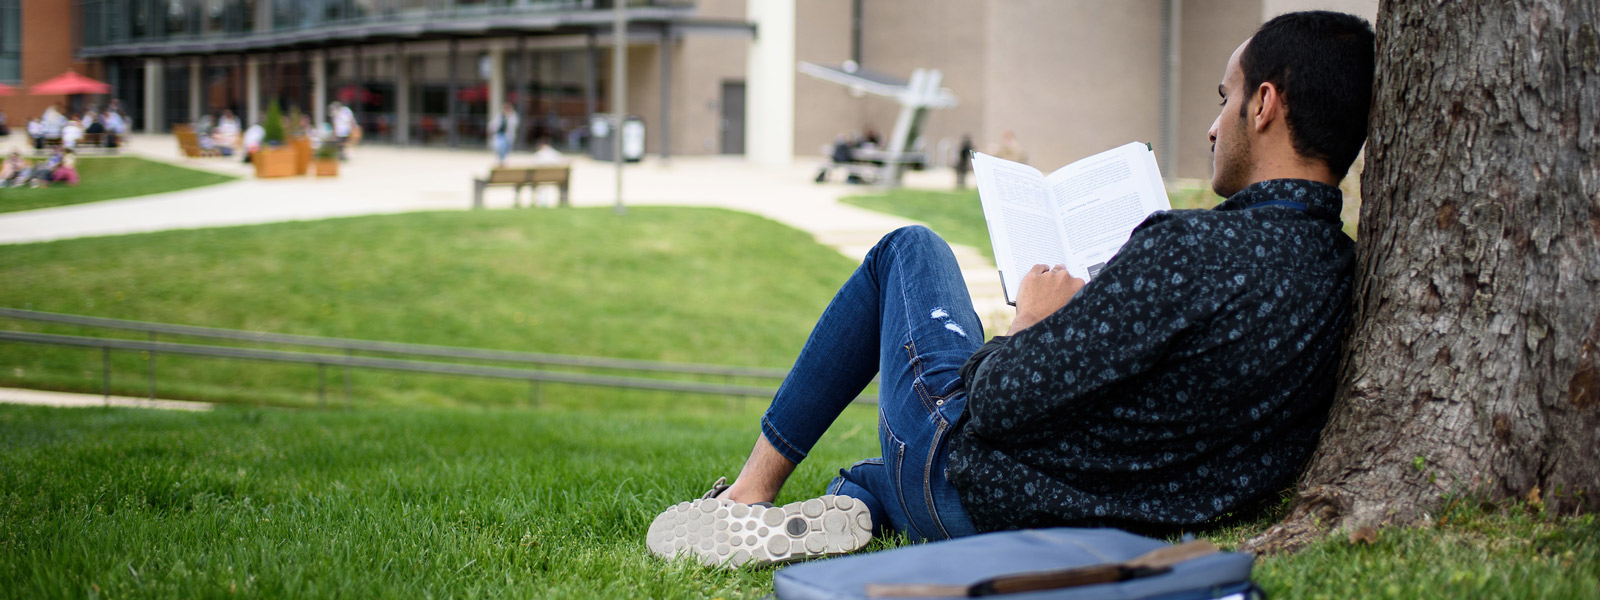 Man reading on university lawn